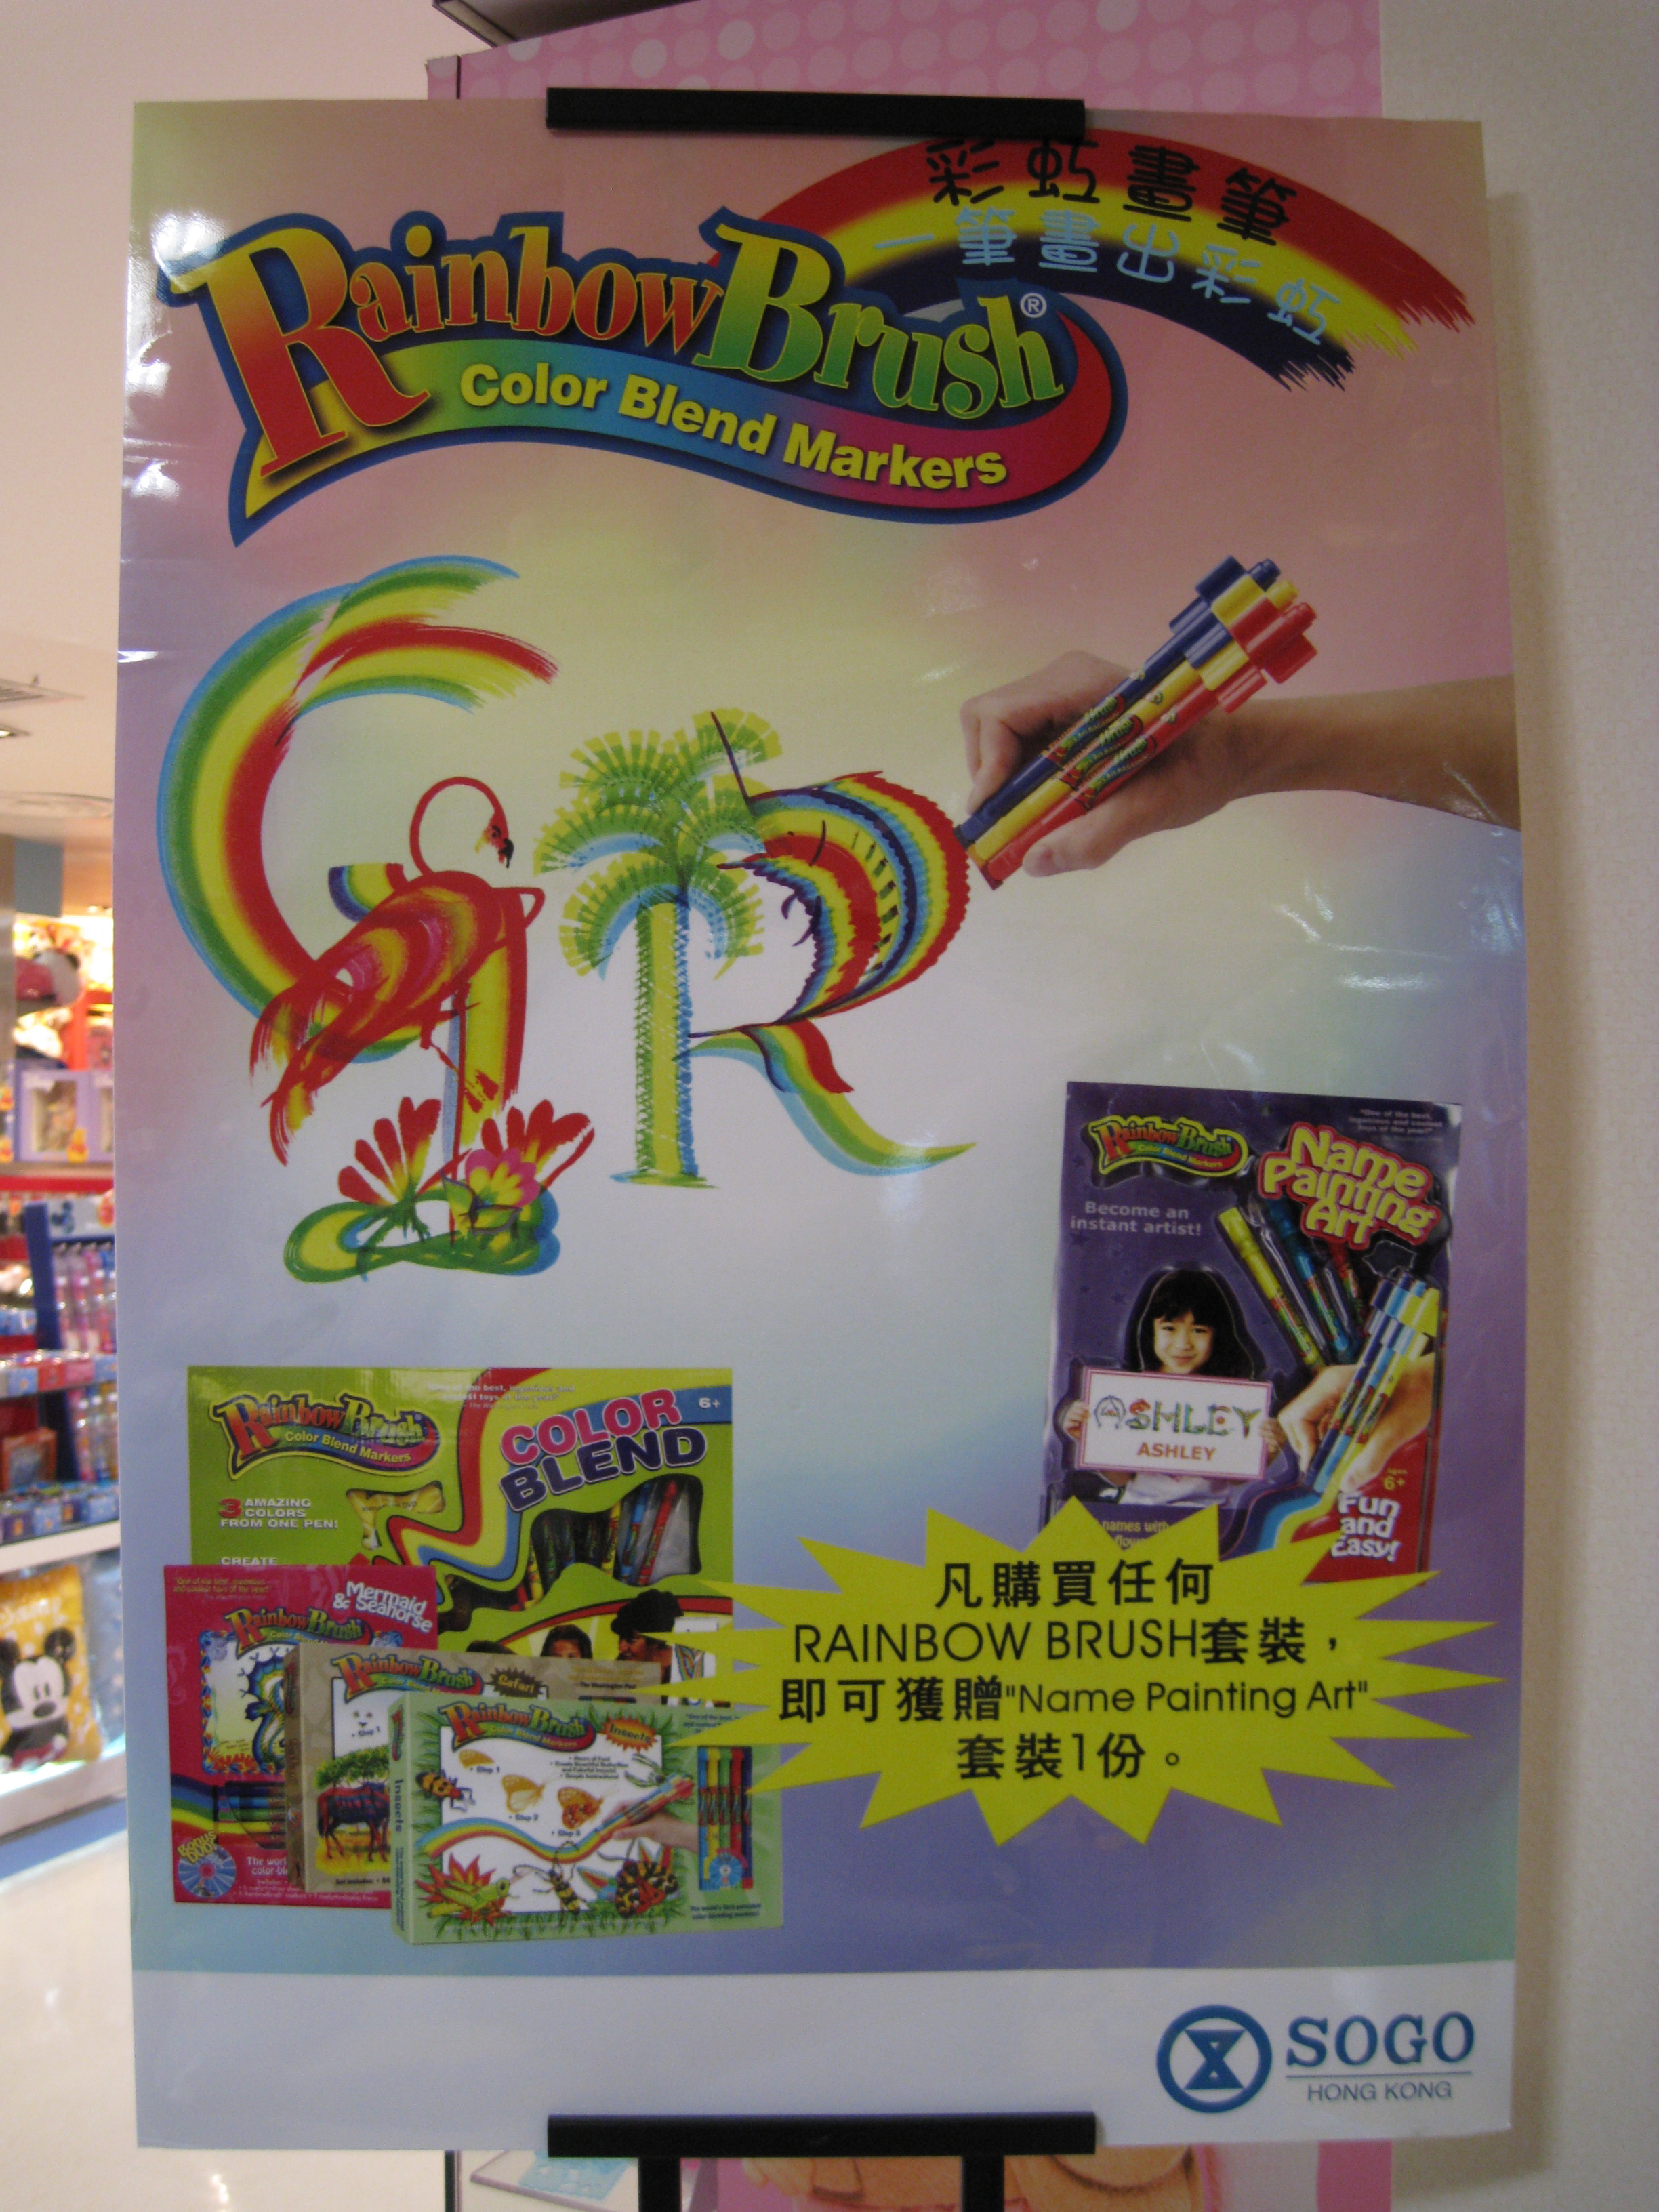 Sogo store sign advertising RainbowBrush in Hong Kong